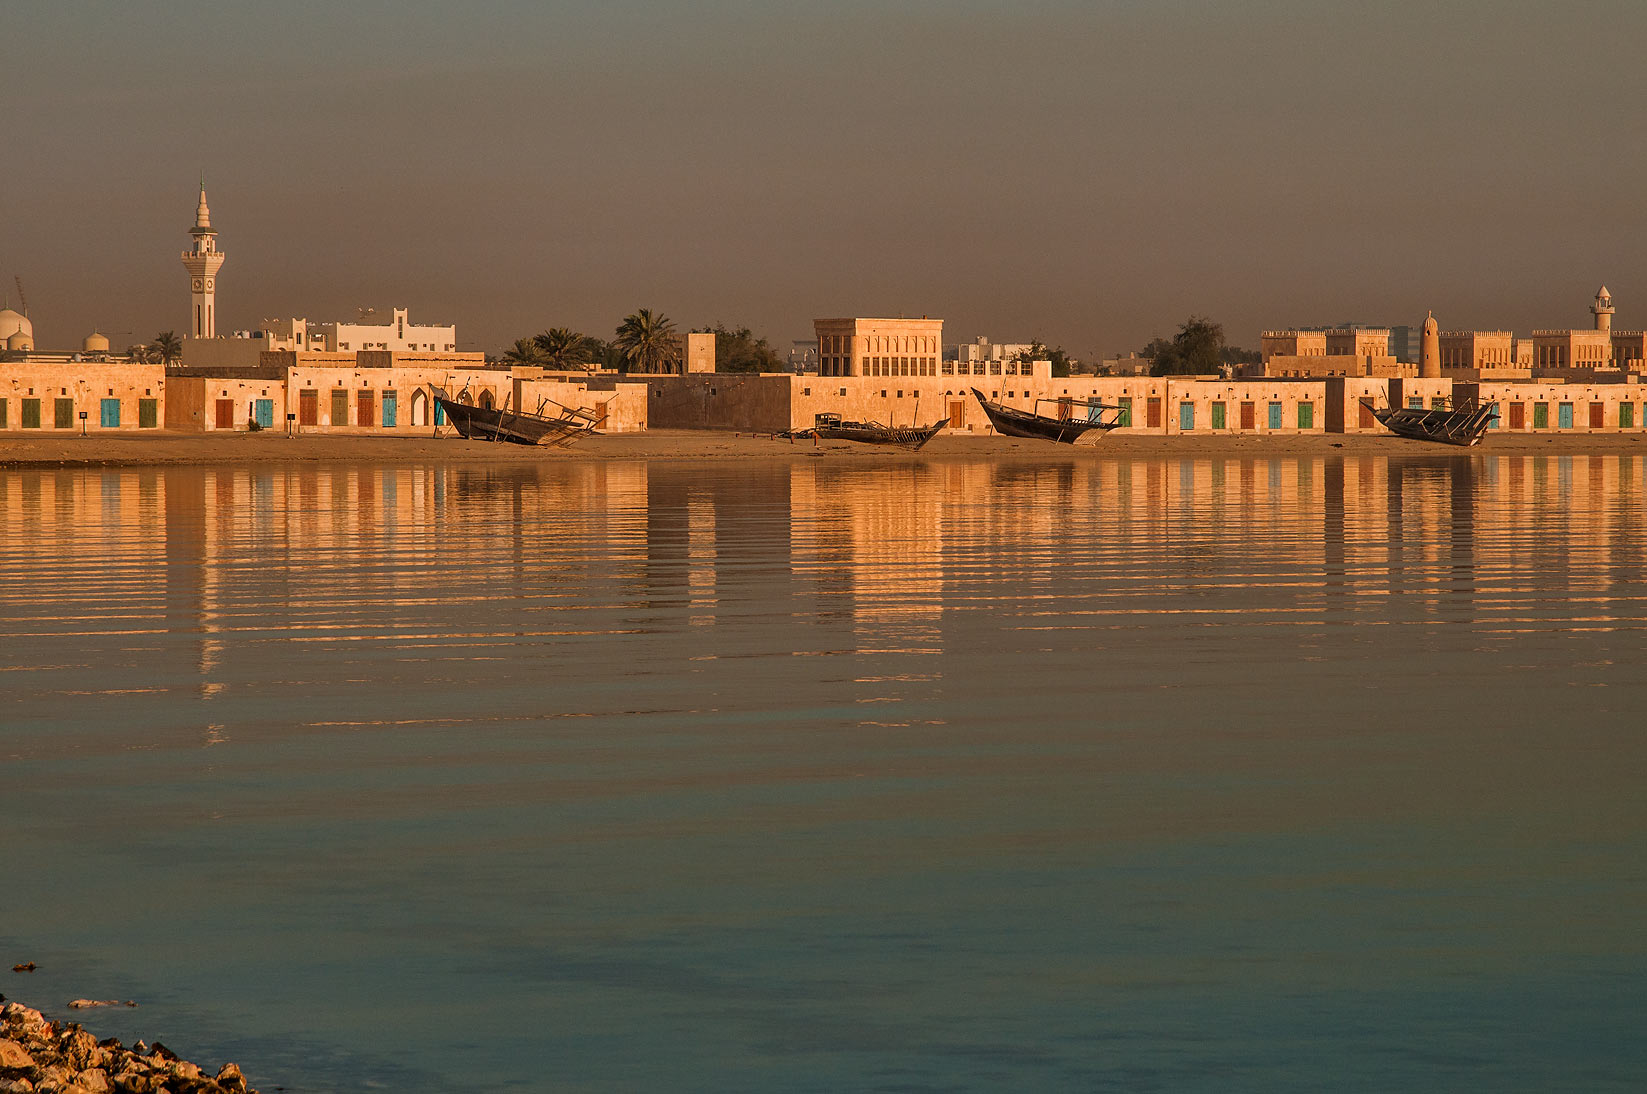 Restored historical village from a pier in Al Wakra. Qatar